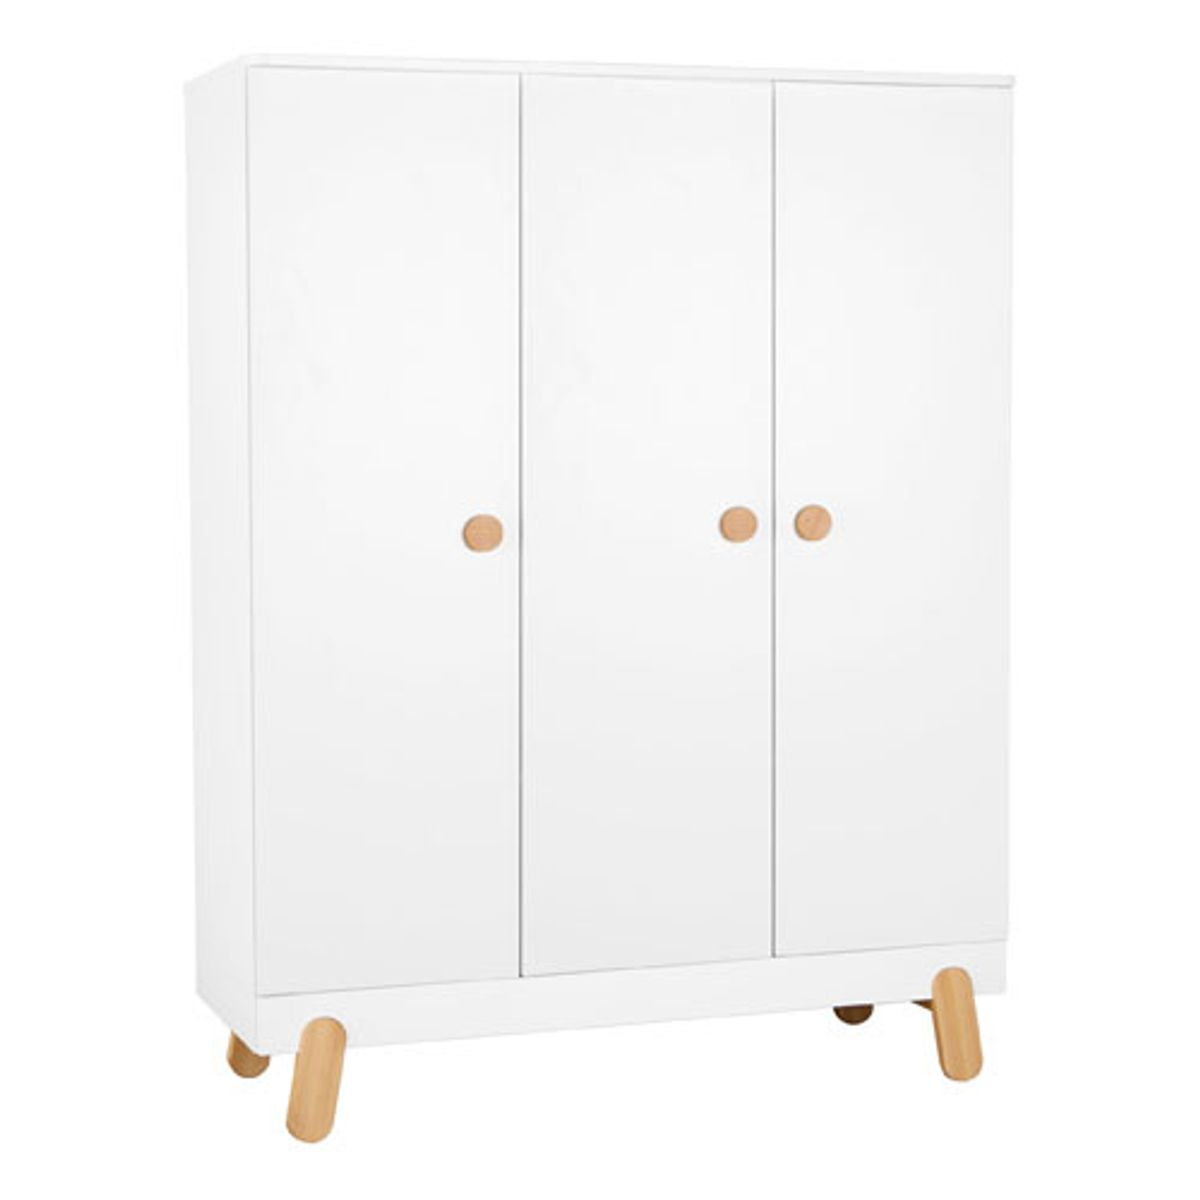 armoire penderie en bois blanc et naturel 3 portes 5 tag res iga pinio decoclico. Black Bedroom Furniture Sets. Home Design Ideas